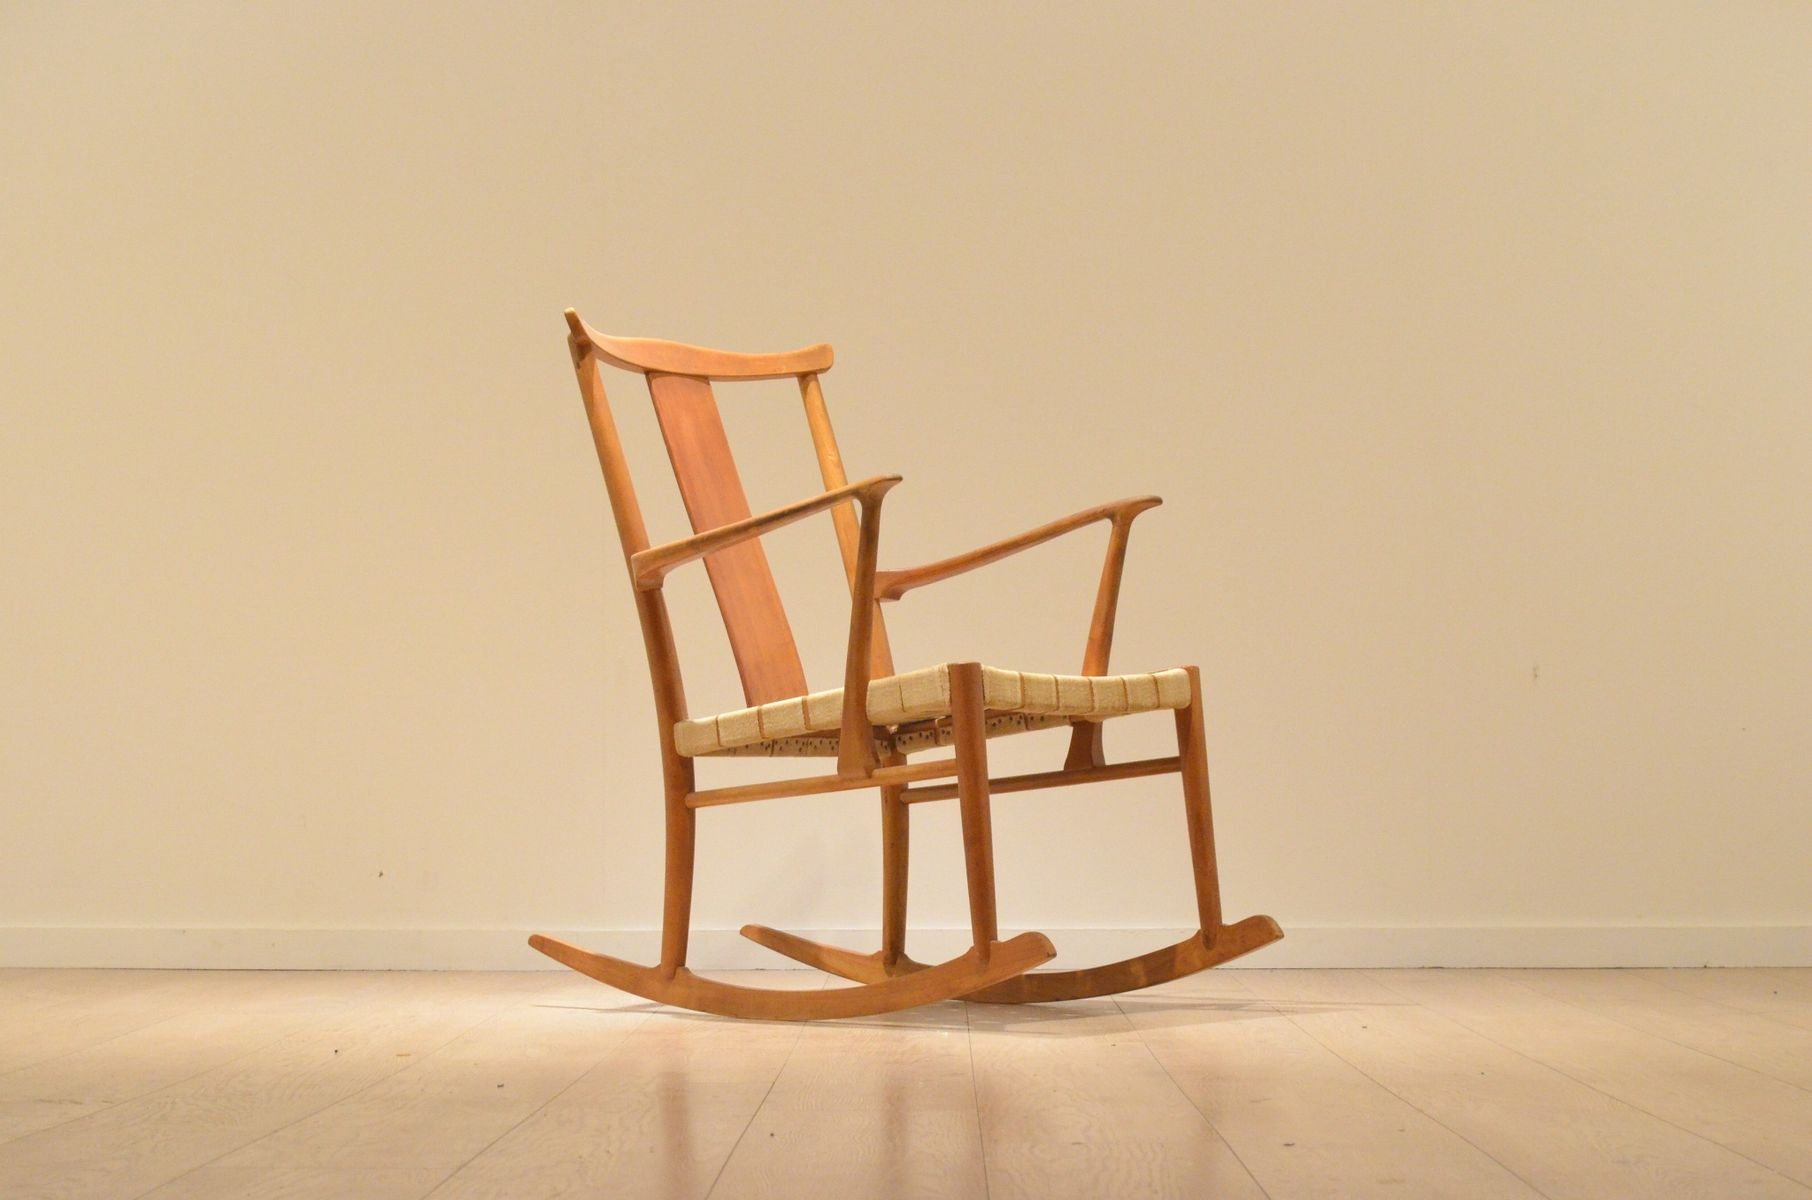 Model 1773 Rocking Chair by Axel O Larsen for Fritz Hansen 1943